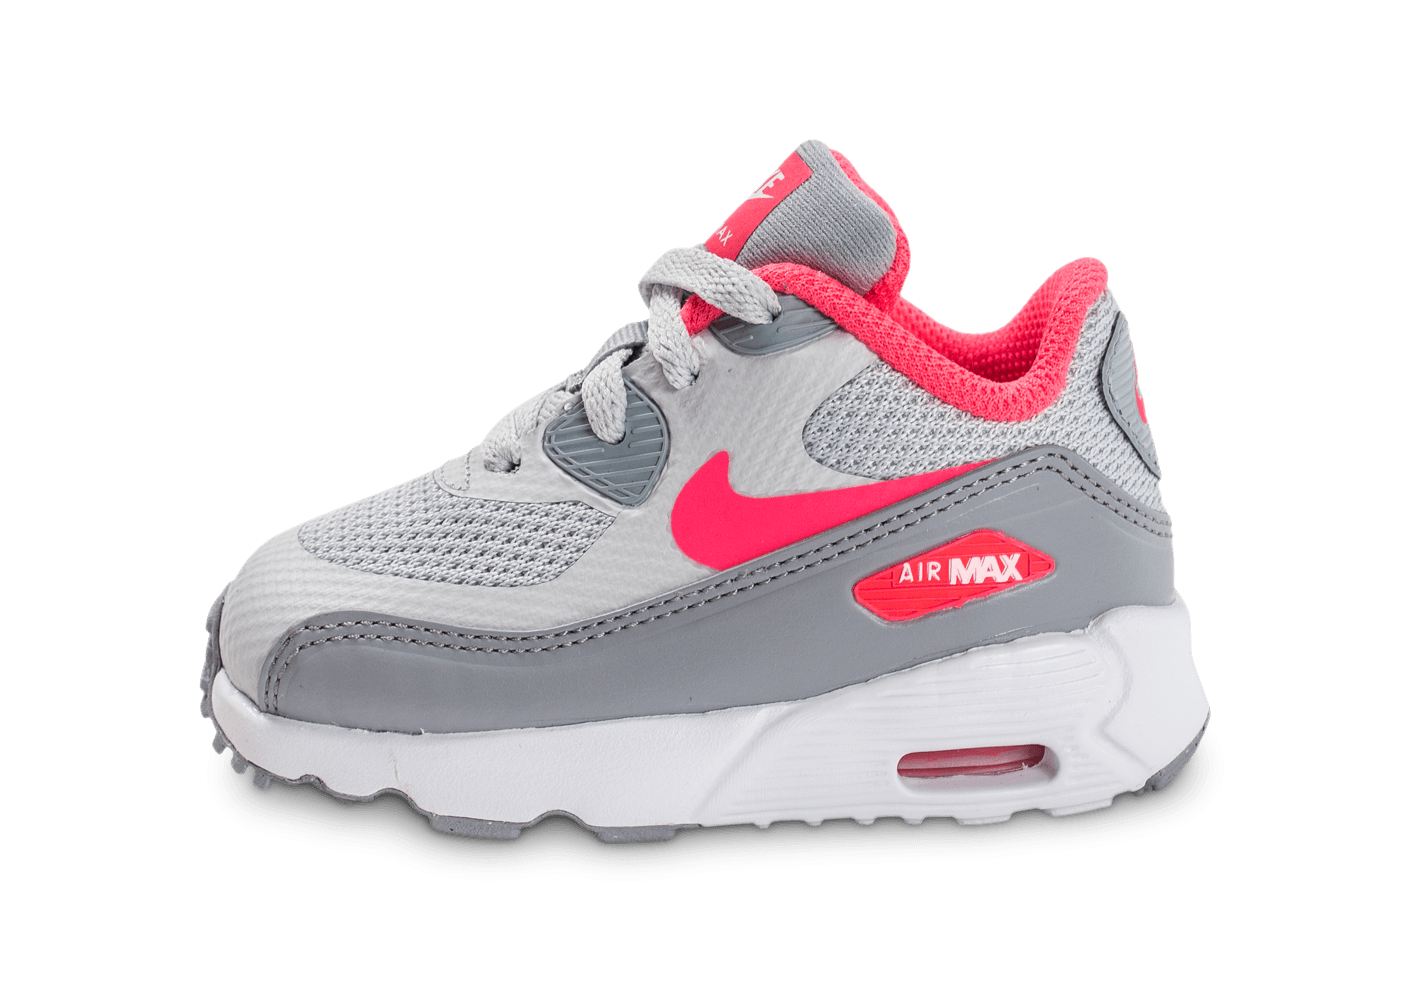 promo codes new product online store nike air max grise et rose,chaussures nike air max 90 enfant grise ...